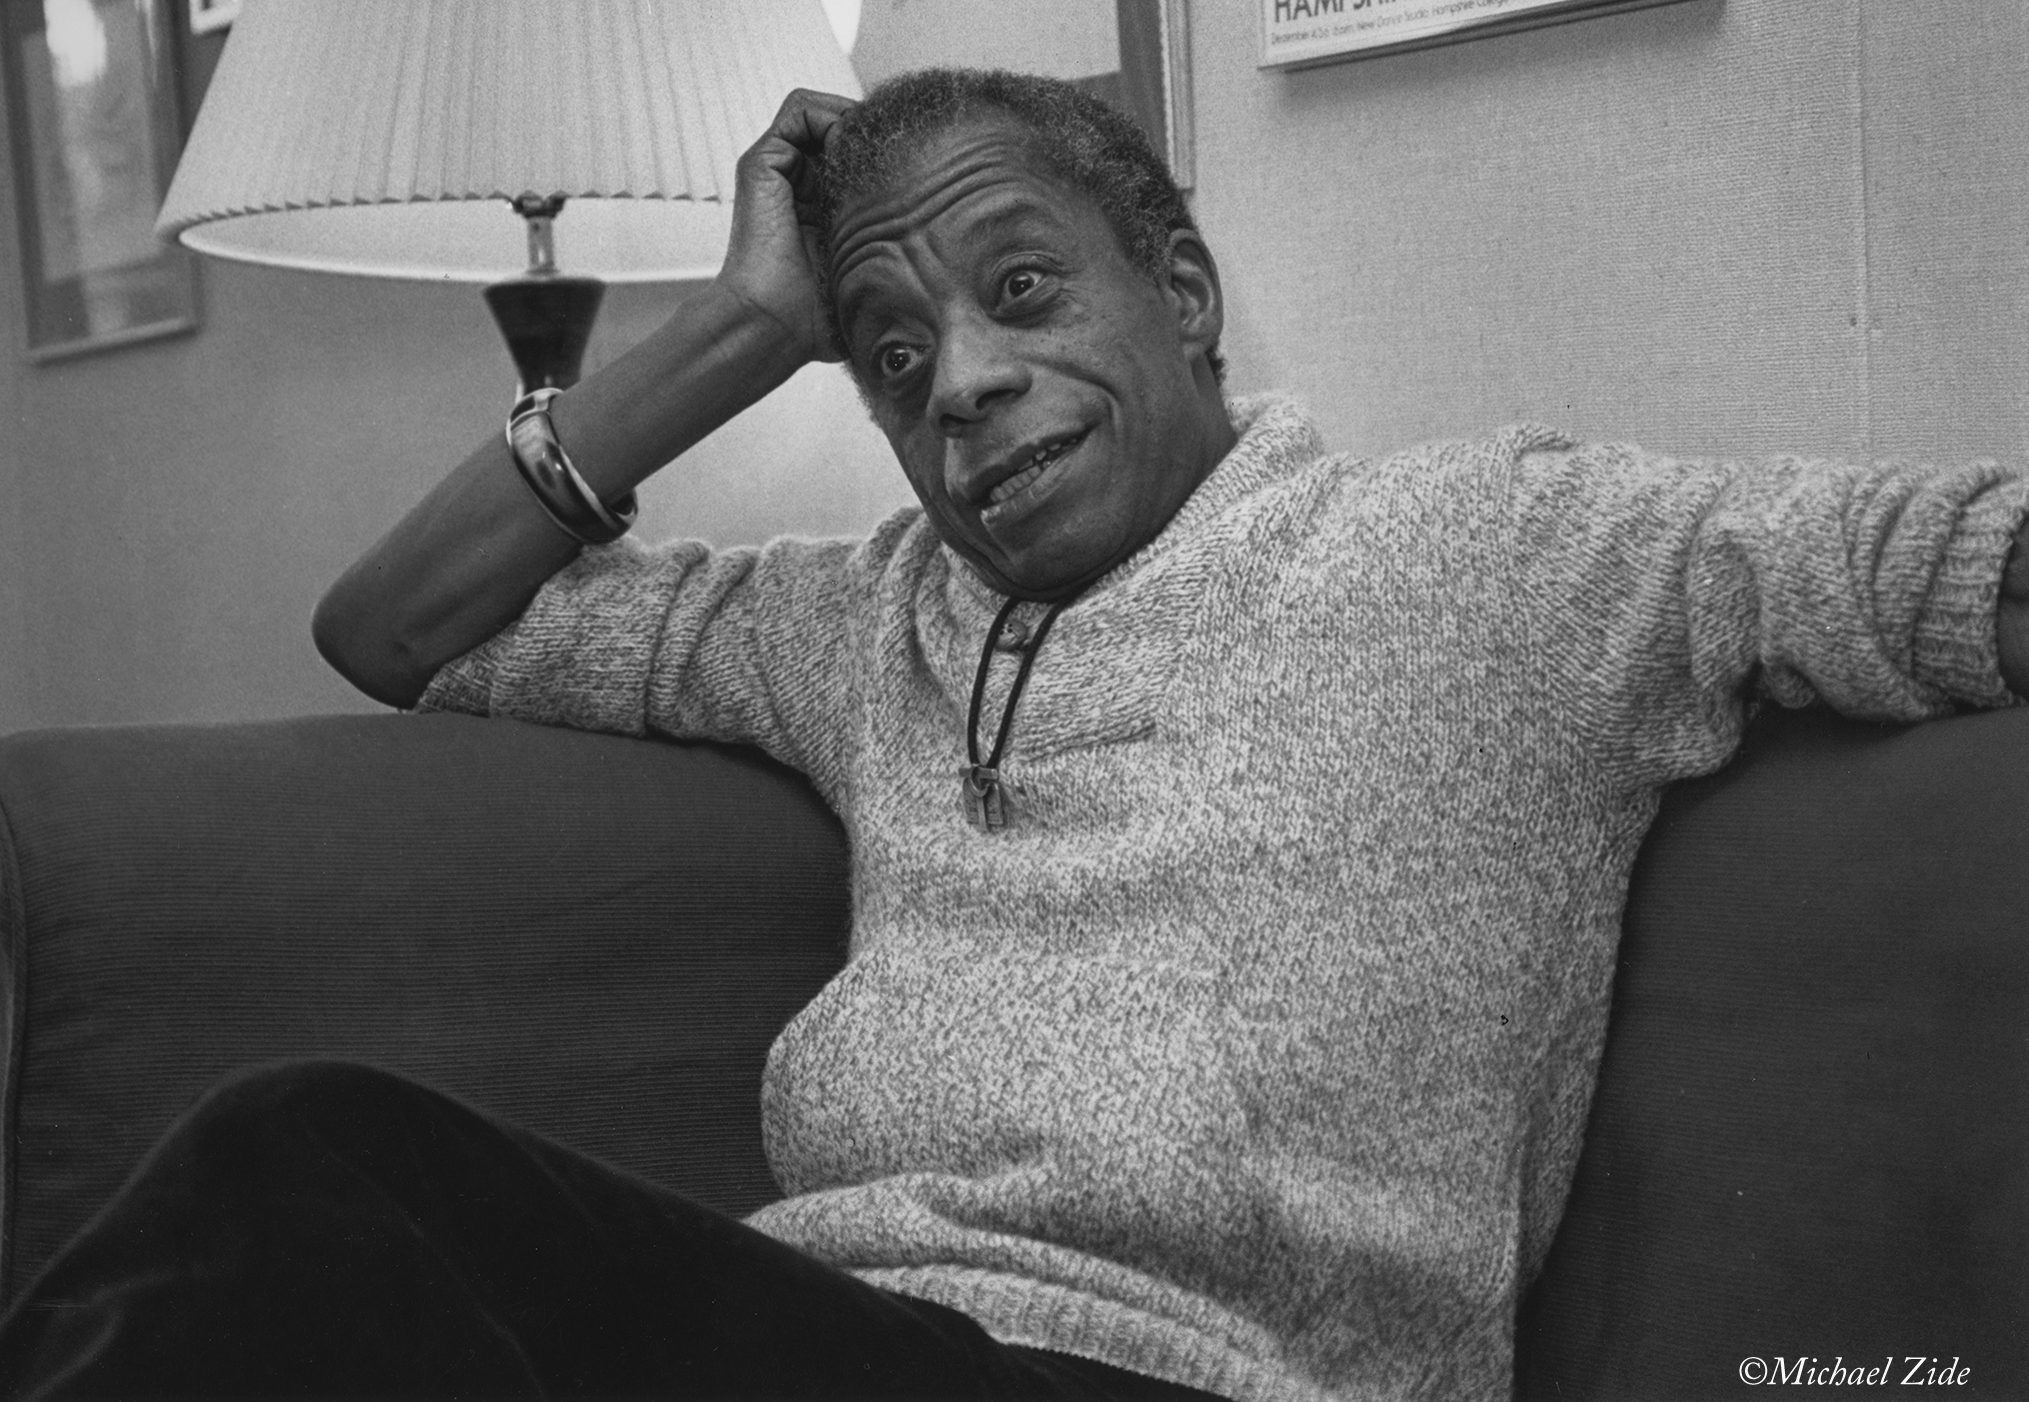 my interview james baldwin now a book russell steven powell james baldwin hampshire college amherst massachusetts 1983 michaelzide com